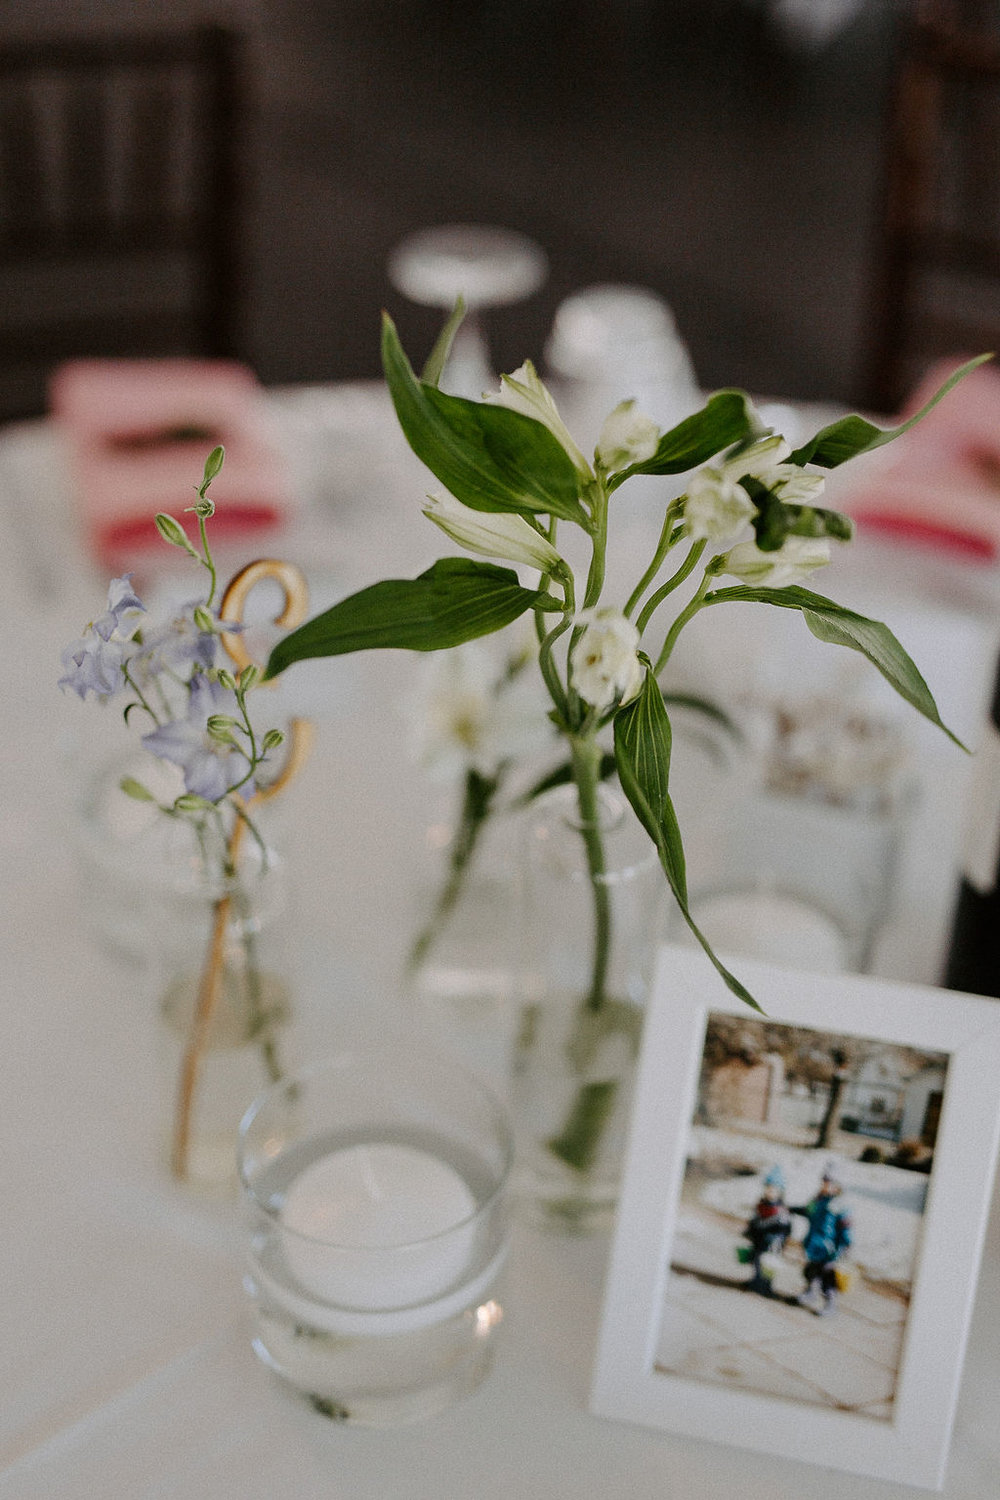 Stem Vase Wedding Centrepieces - Budget Friendly Wedding Flowers